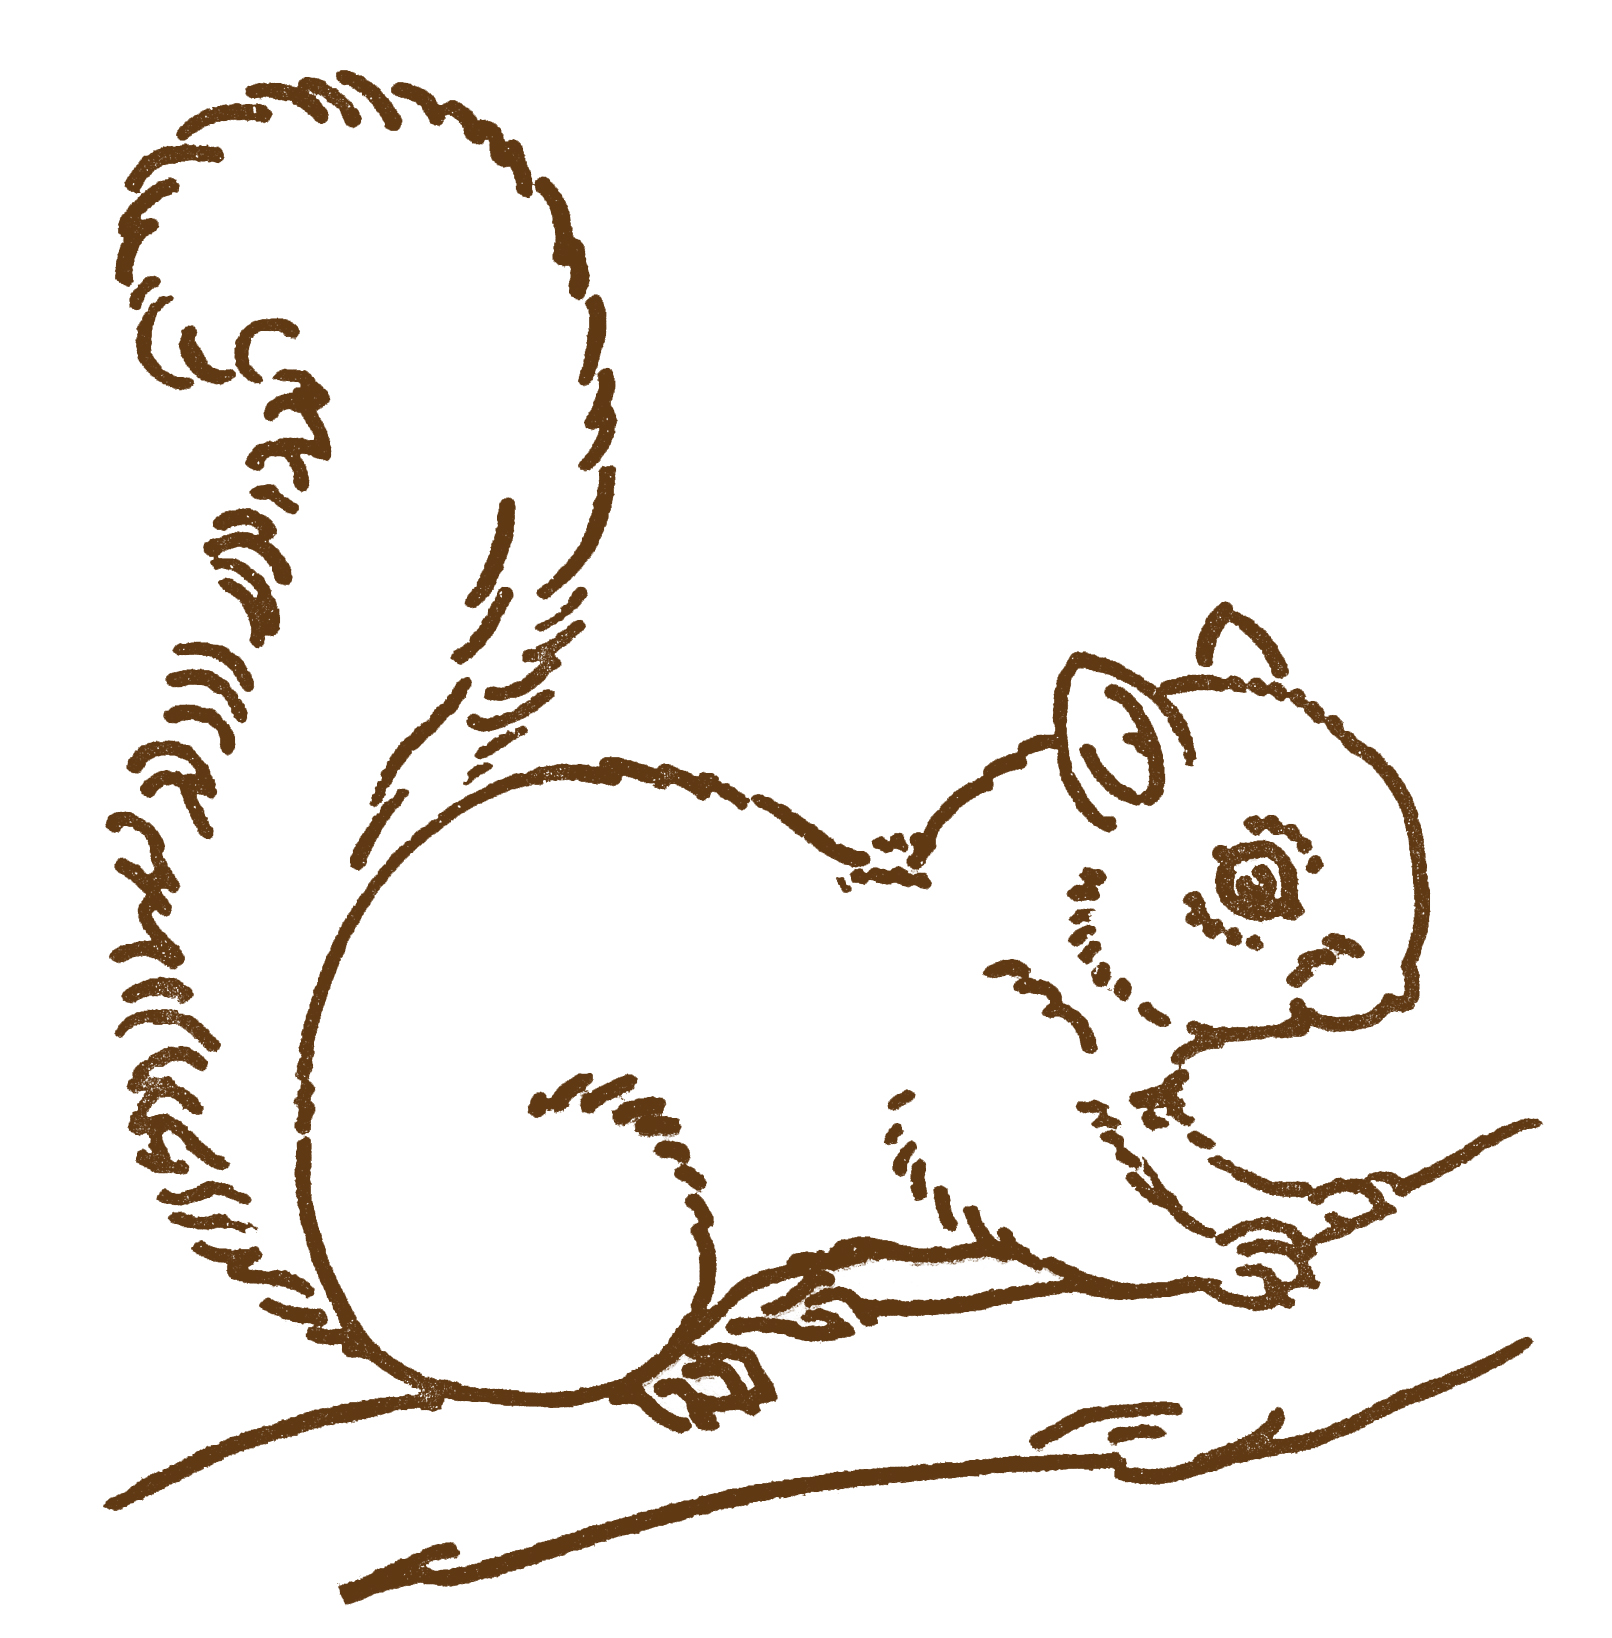 Line Drawings Of Cute Animals : Free line art images squirrel drawings the graphics fairy